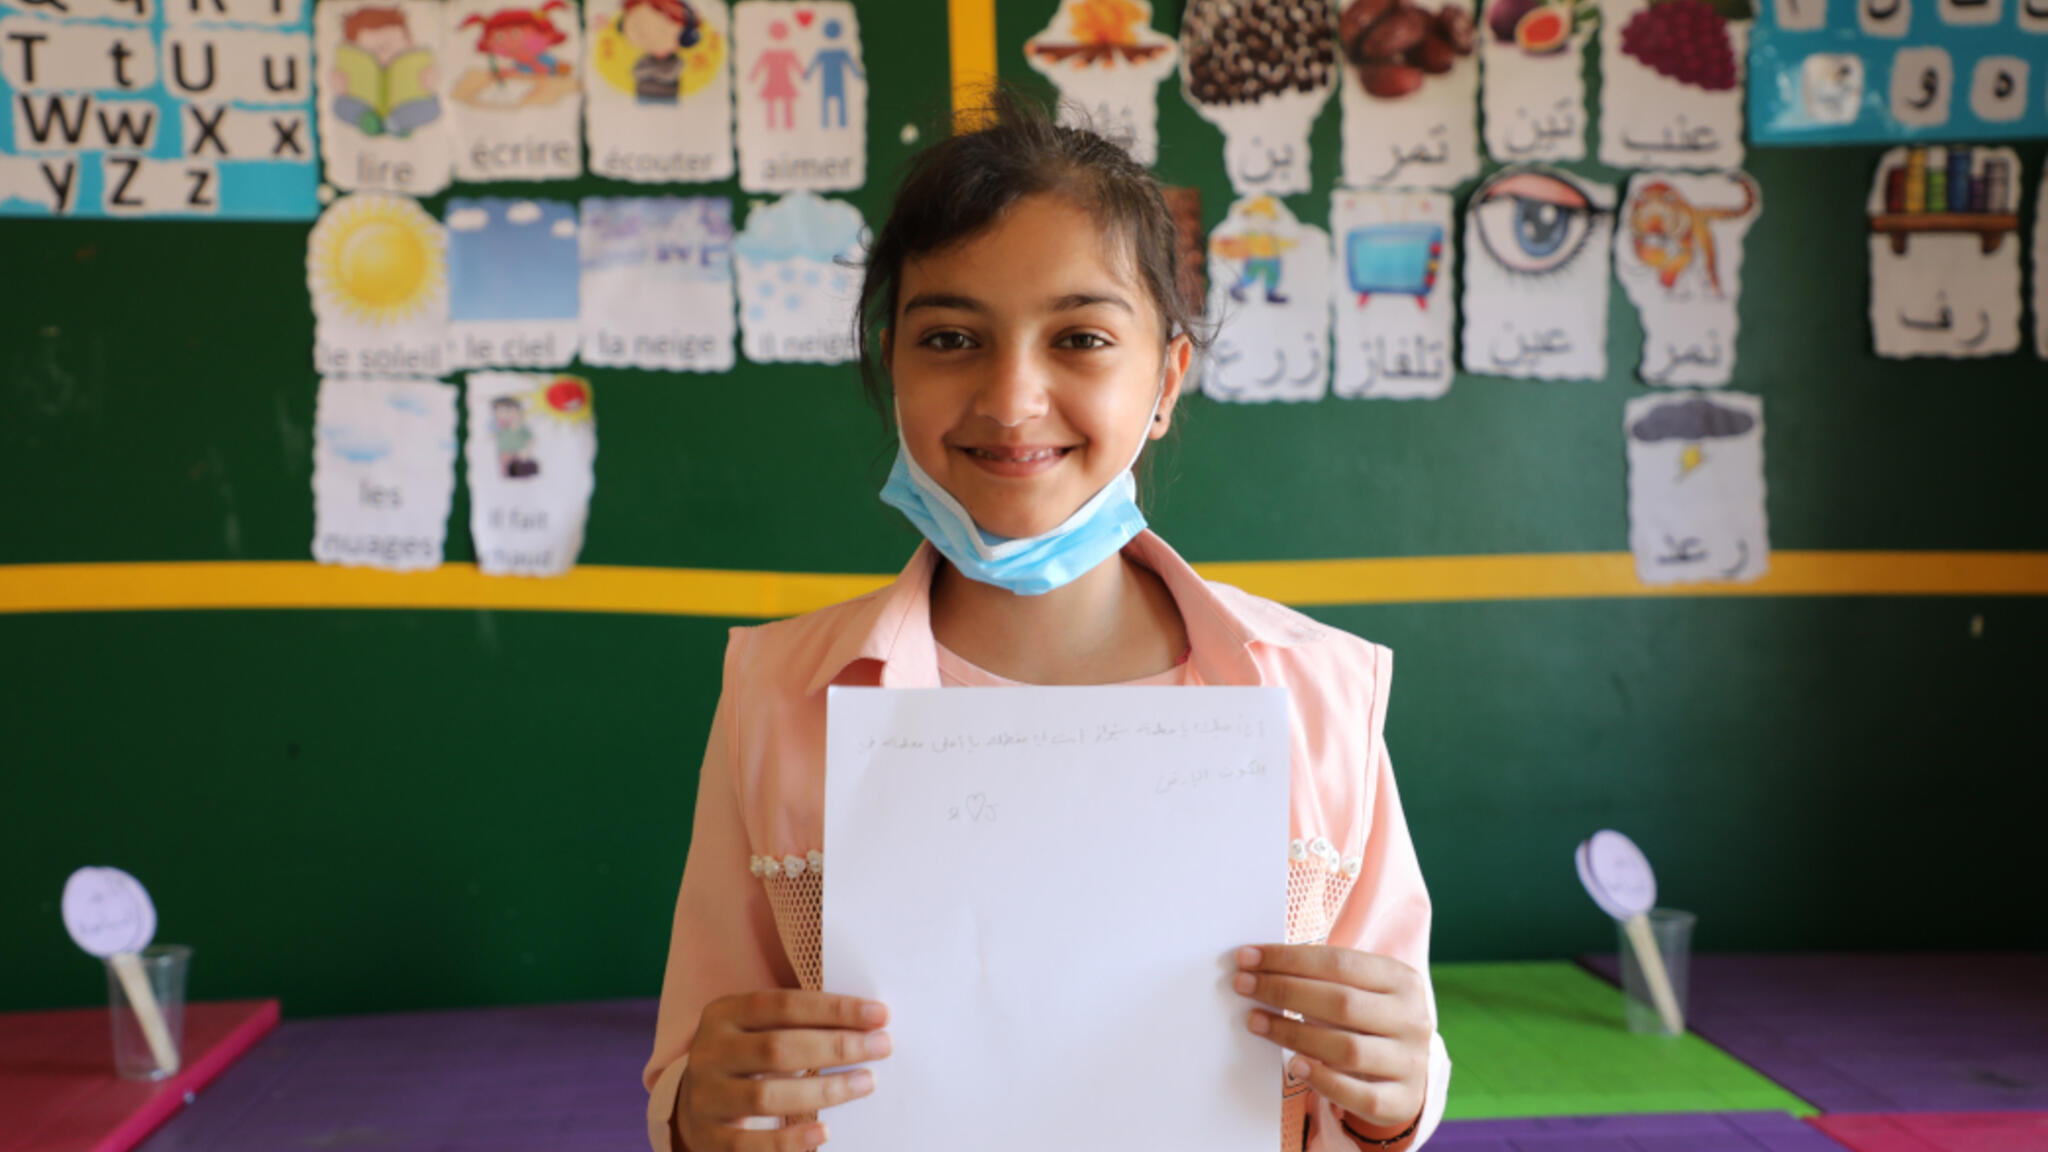 Joumana holding her schoolwork towards the camera